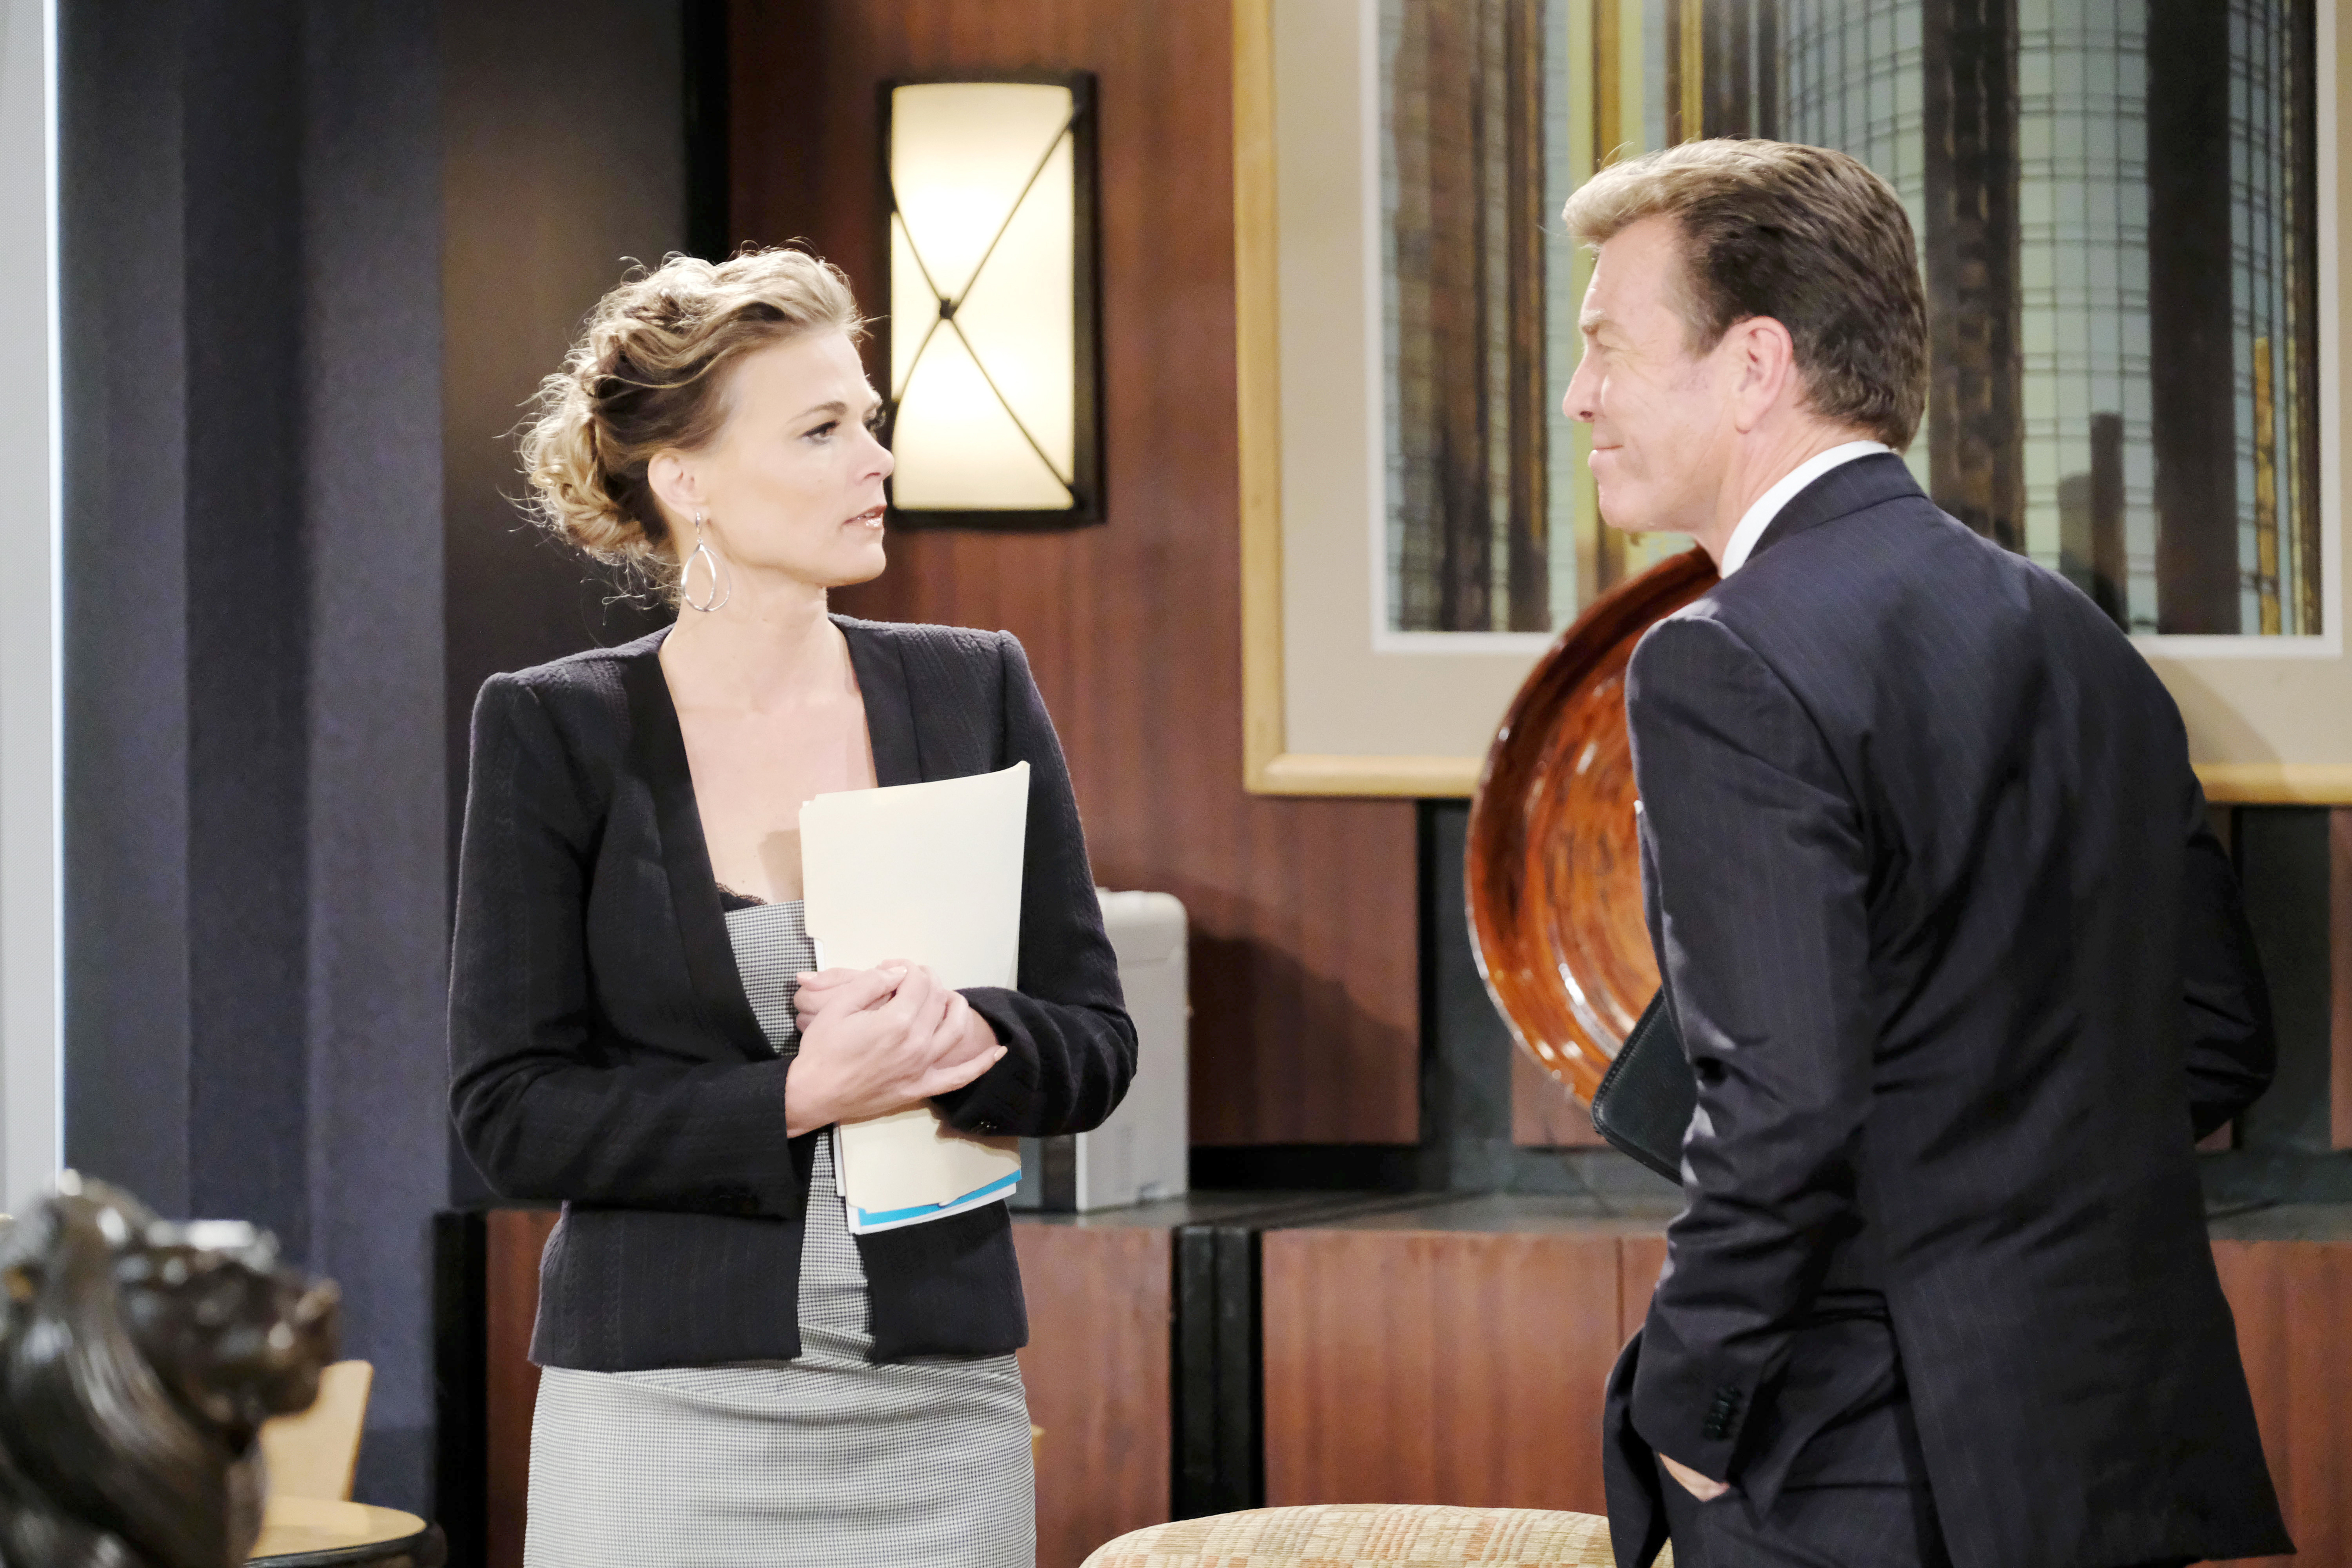 The Young and the Restless Spoilers: Jack forces Phyllis to face the truth about Billy's deception.